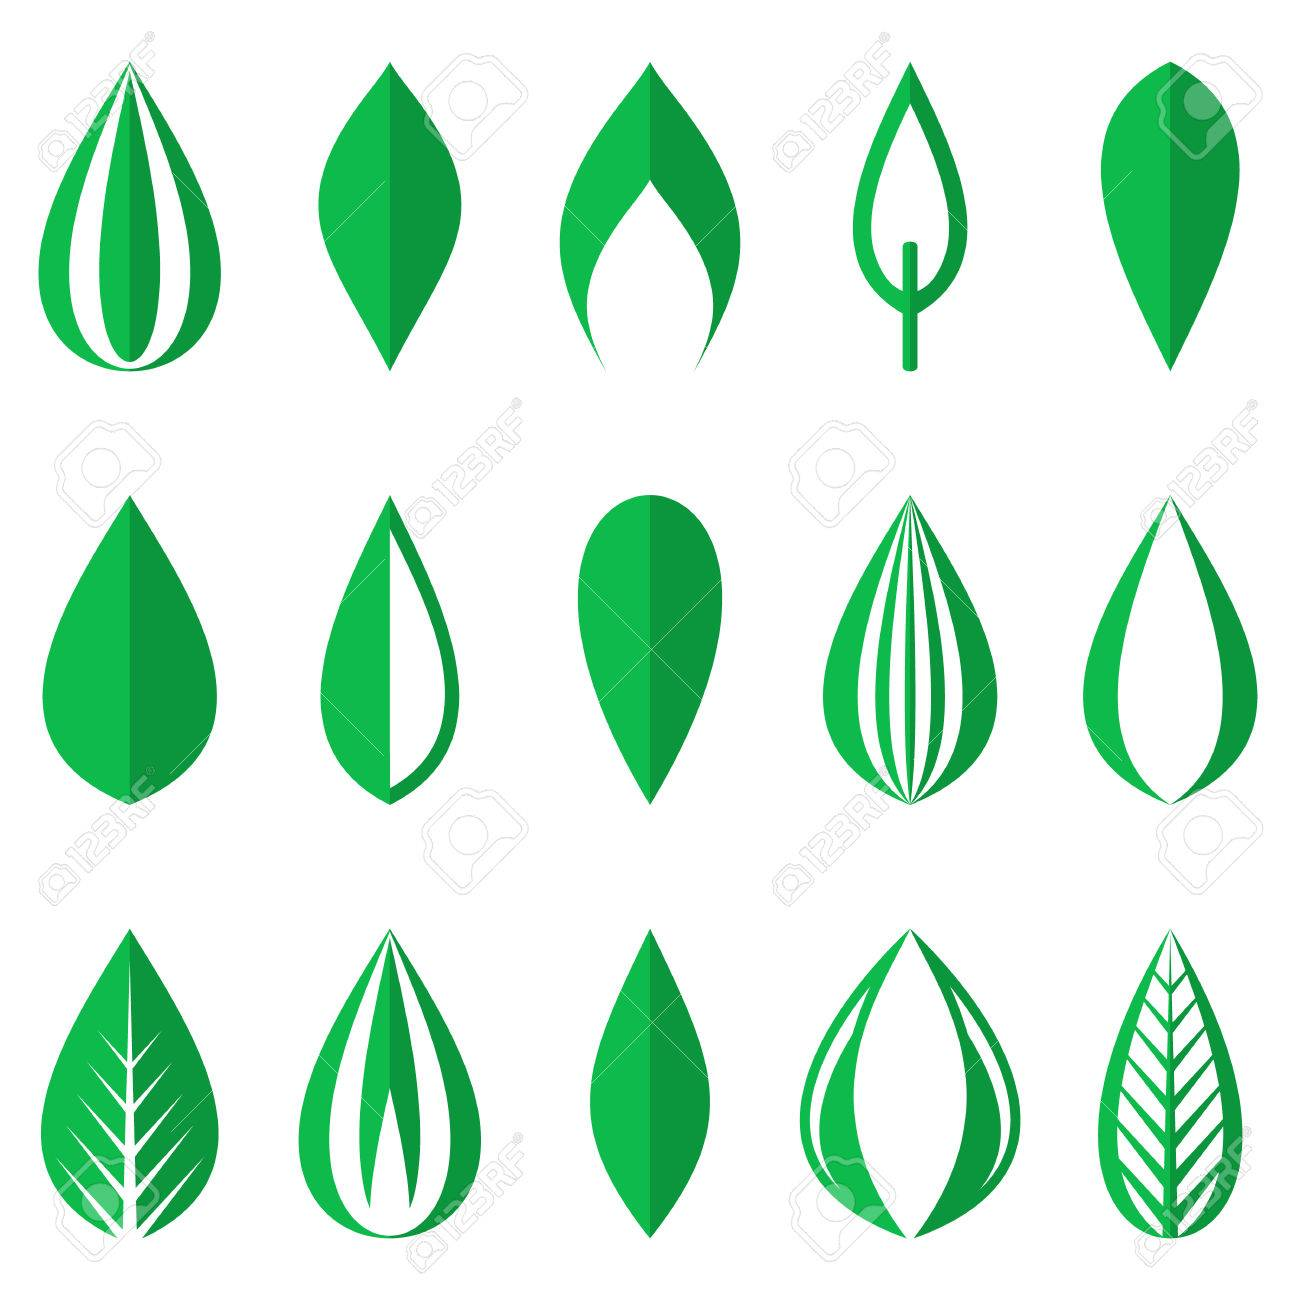 Different Origami Green Simple Leaves On White Background Stock Vector